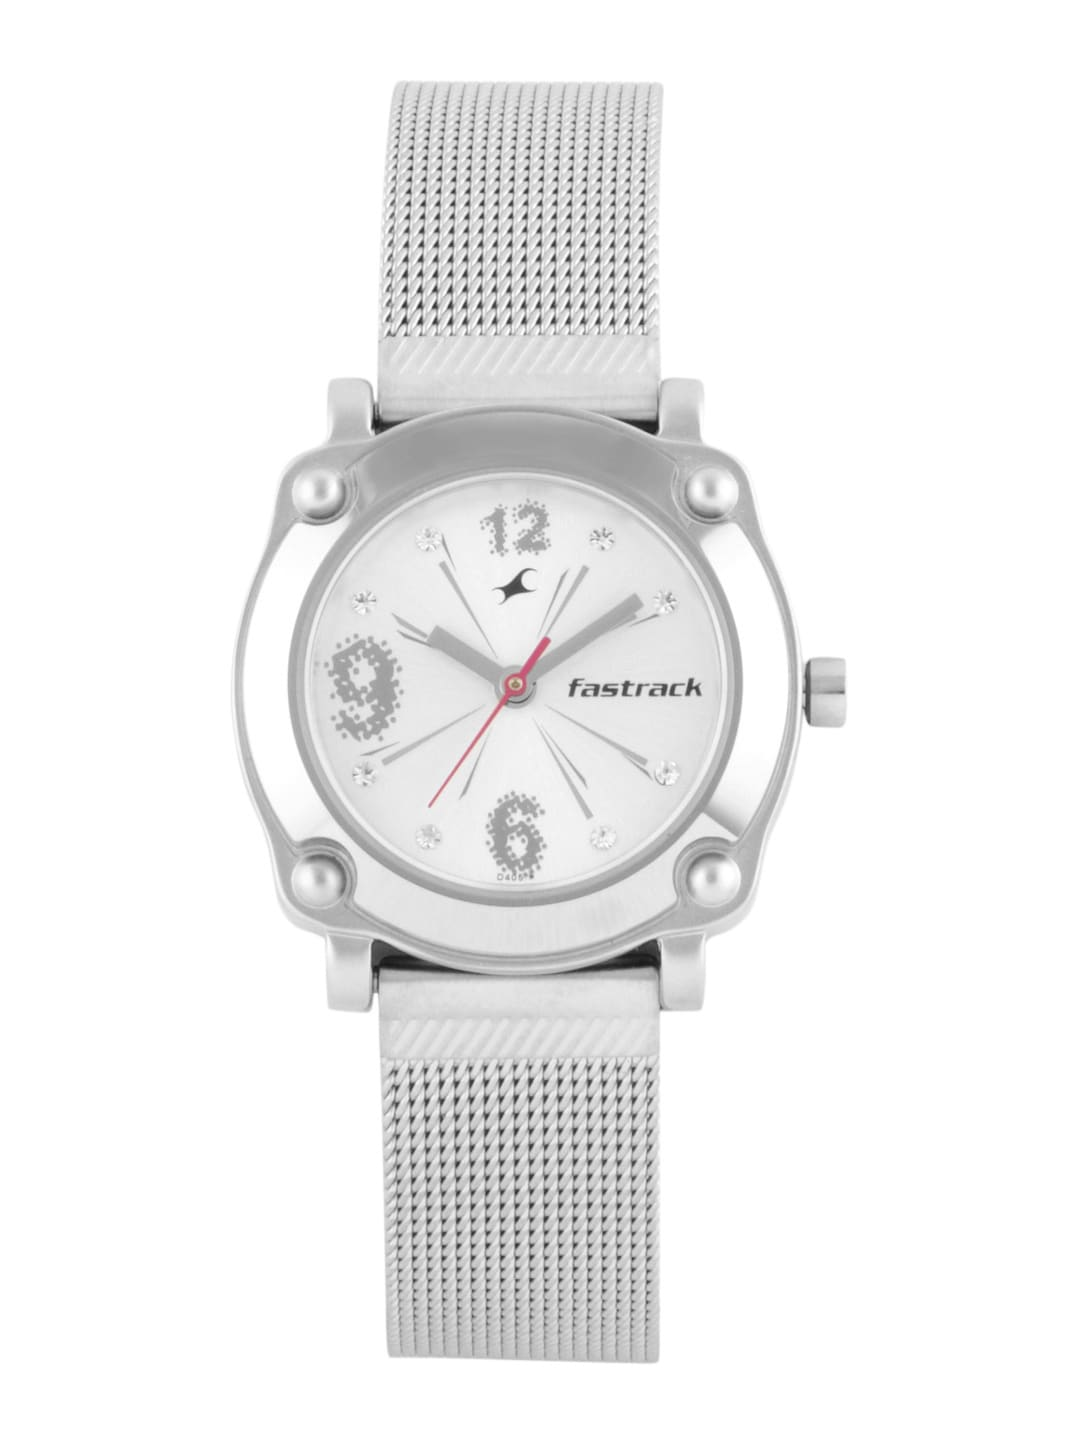 Fastrack Women White Dial Watch NB6027sm01